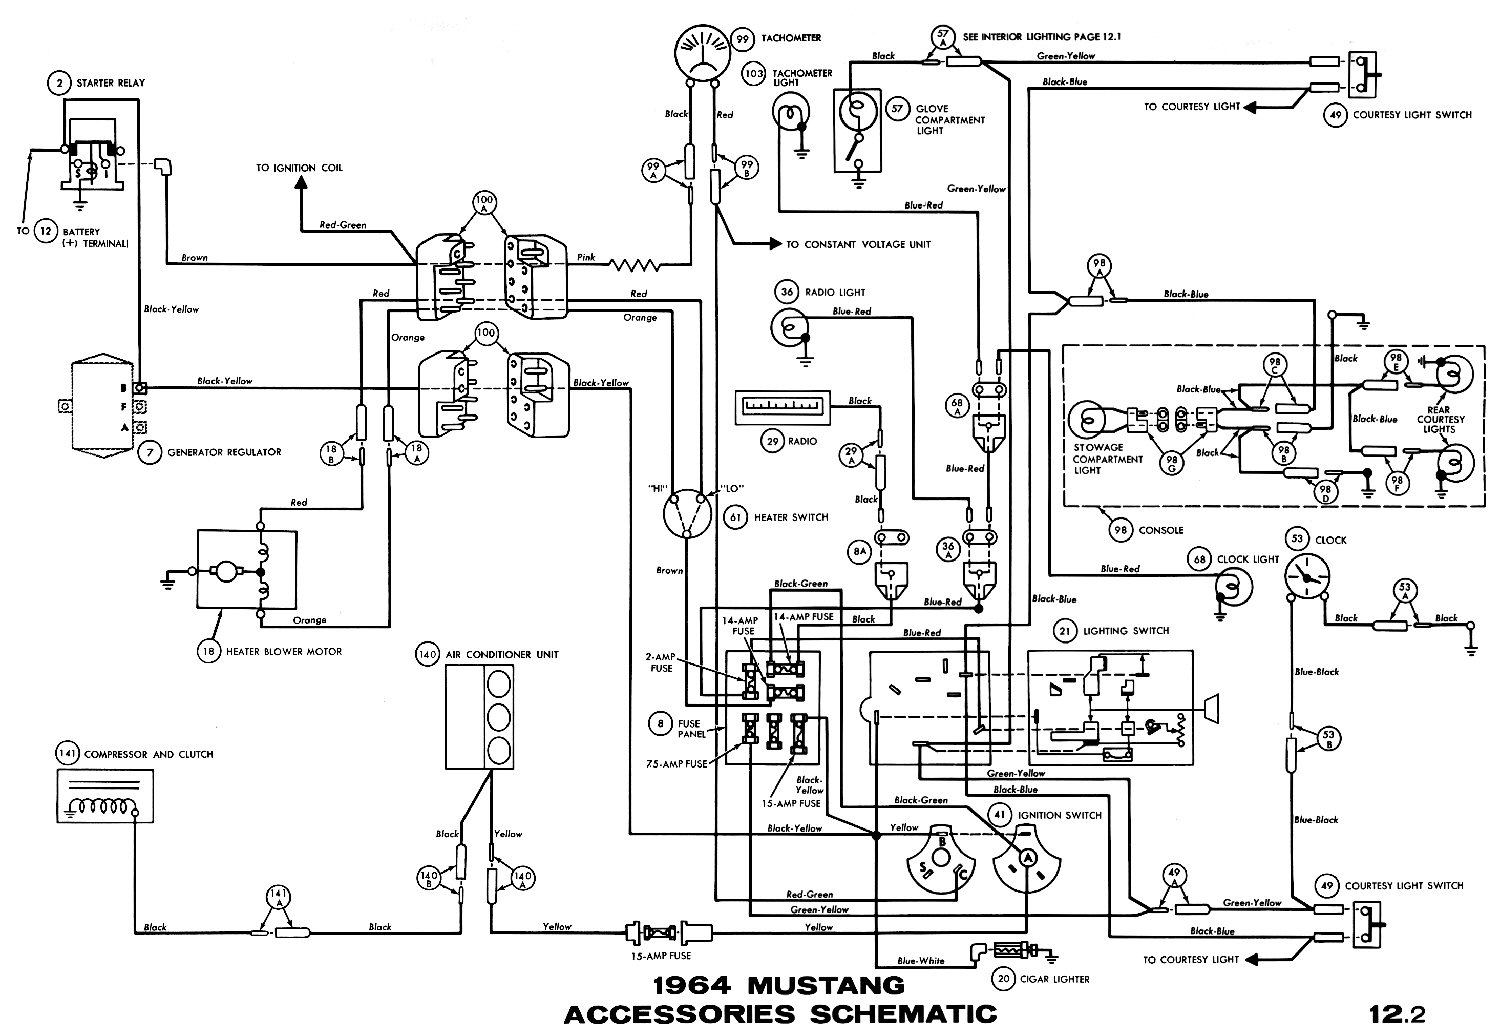 1964m 1964 mustang wiring diagrams average joe restoration 1969 mustang wiring diagram at honlapkeszites.co